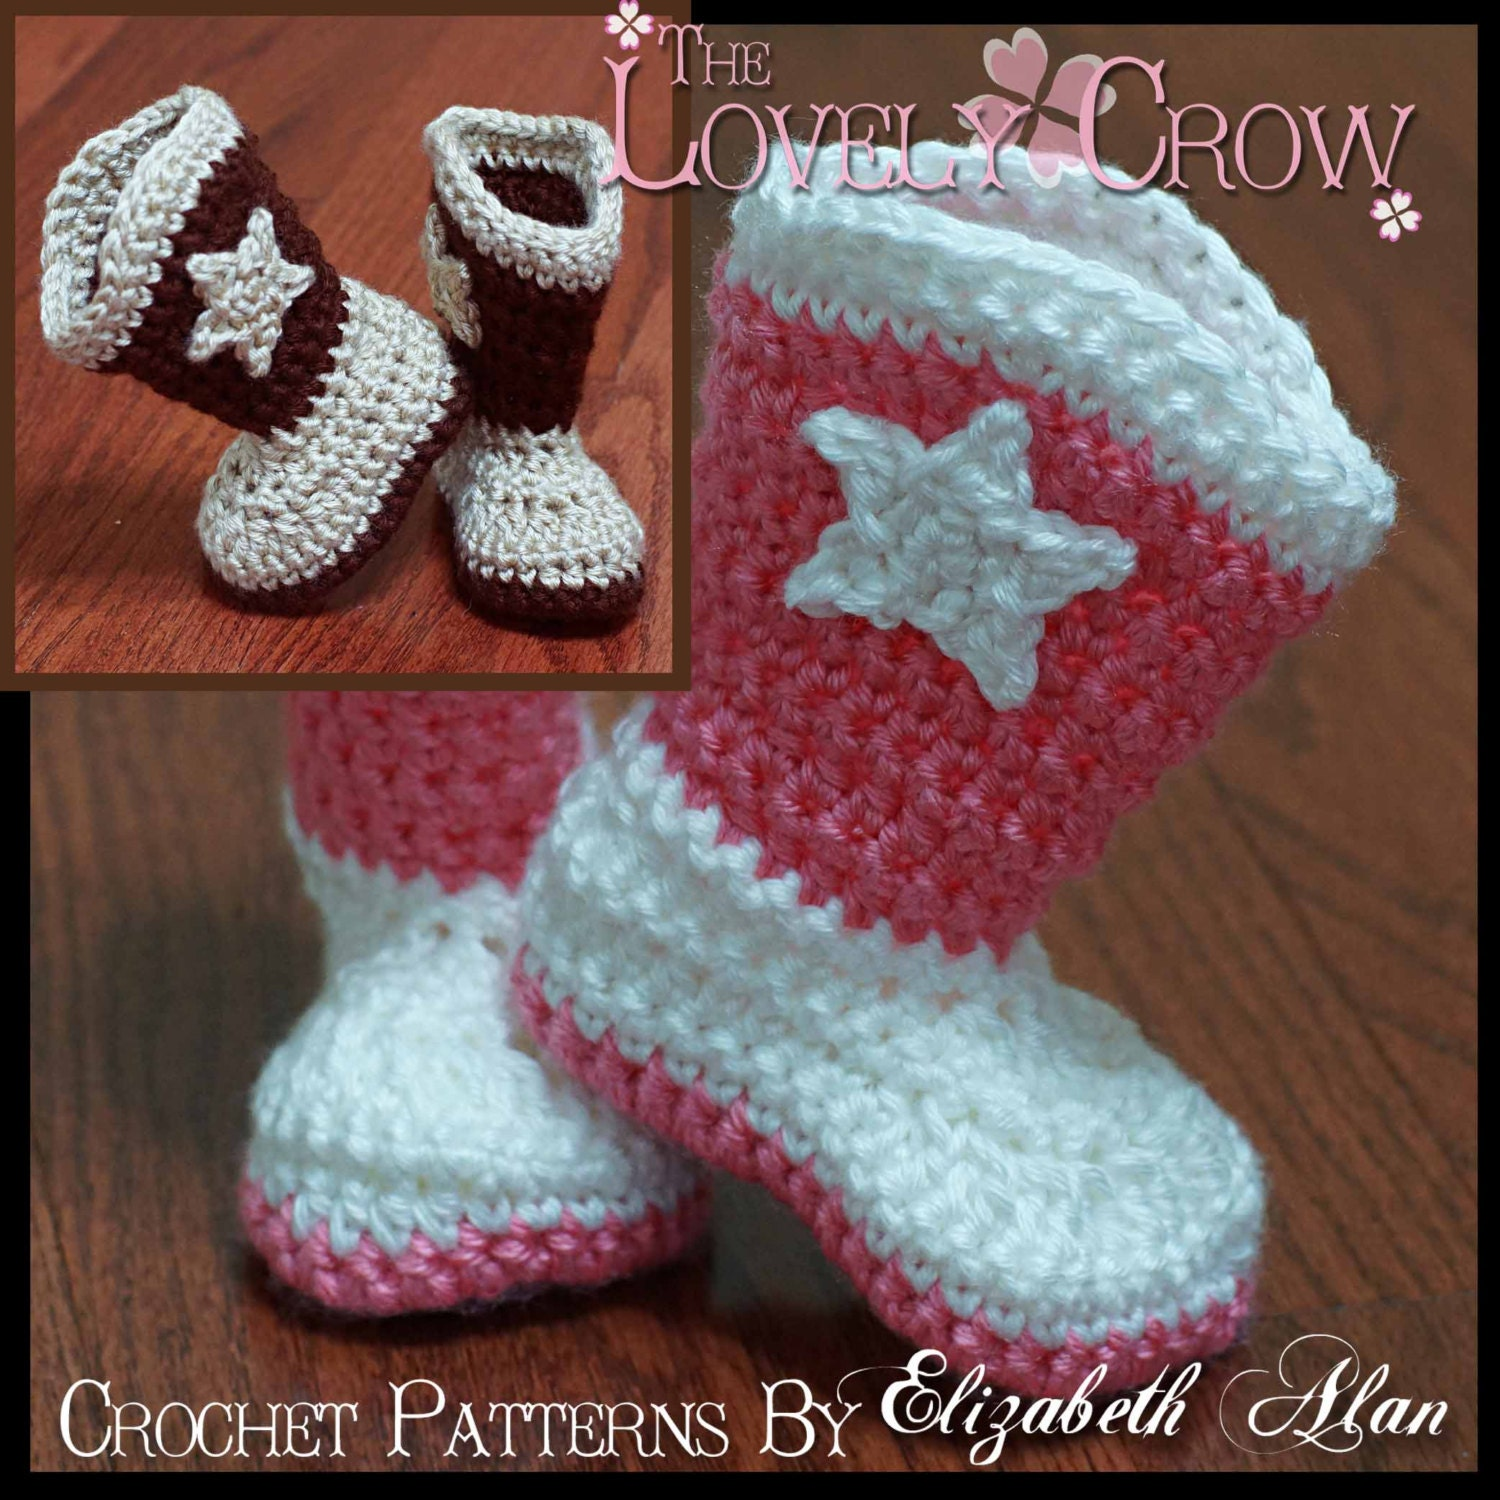 Free Crochet Patterns For Baby Girl Bonnets : Crochet Pattern Cowboy Boots TODDLER BOOT SCOOTN Boots